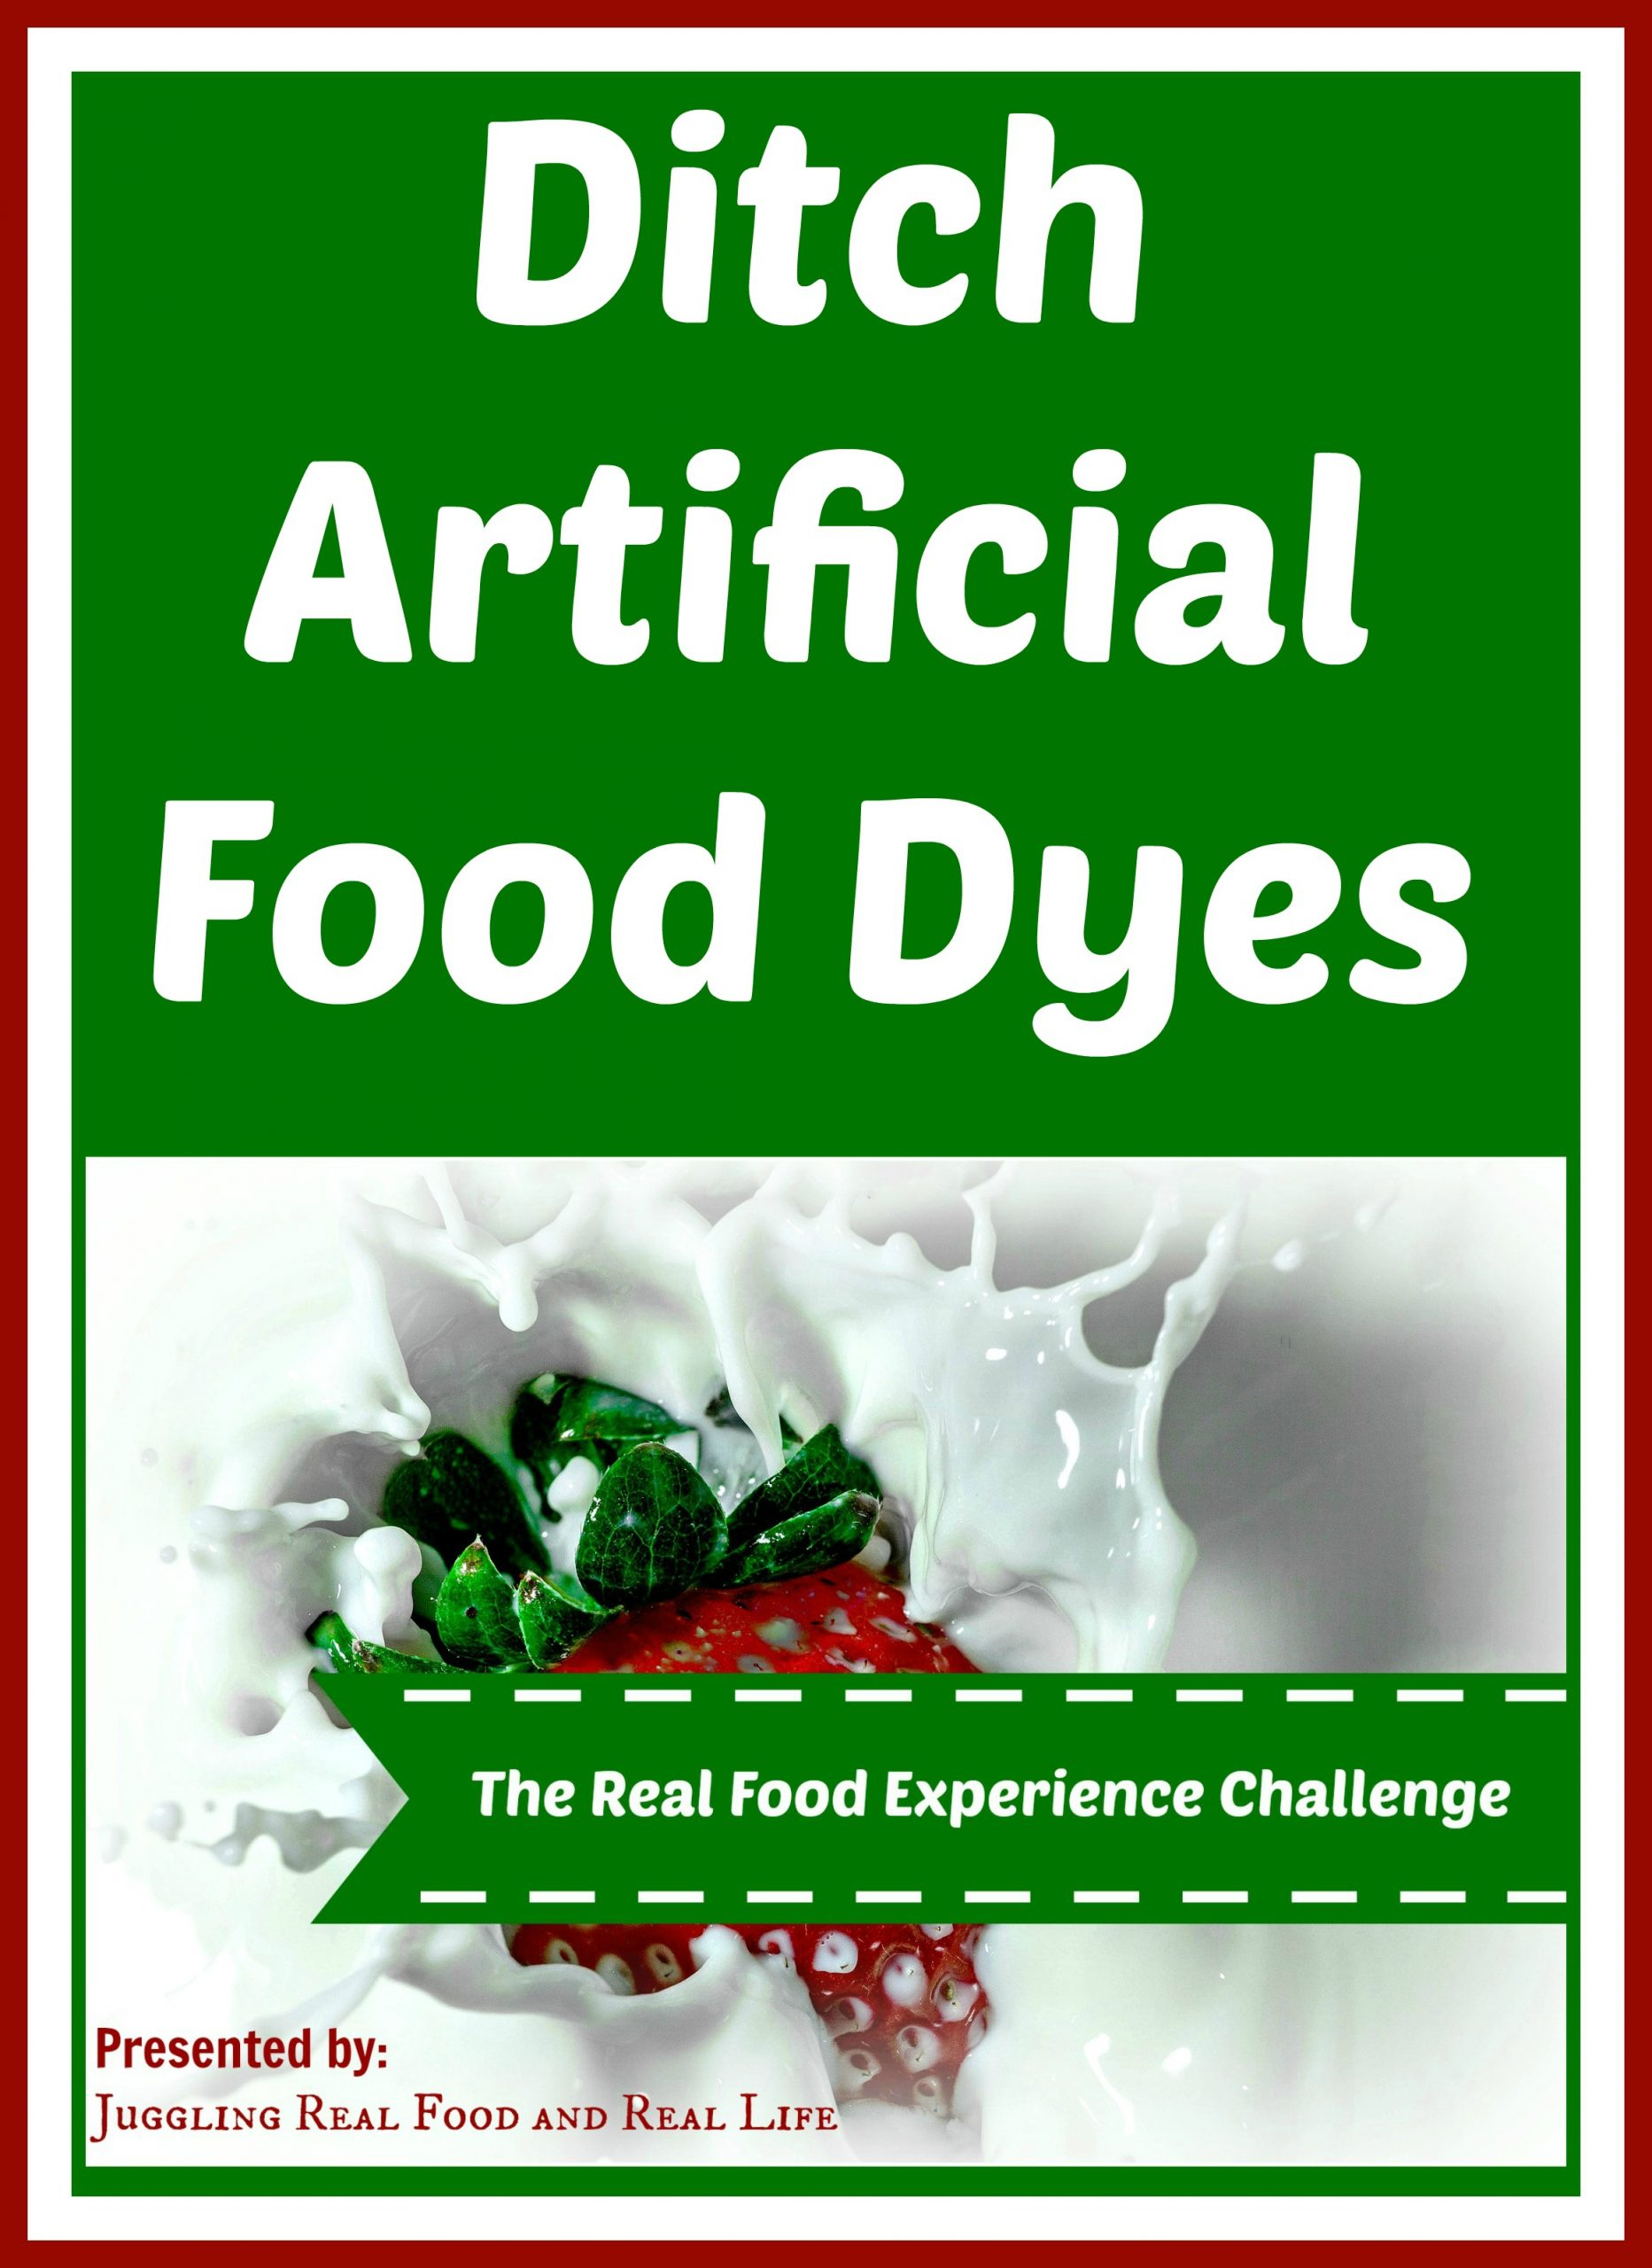 The Real Food Experience Challenge:  Ditch Artificial Food Dyes